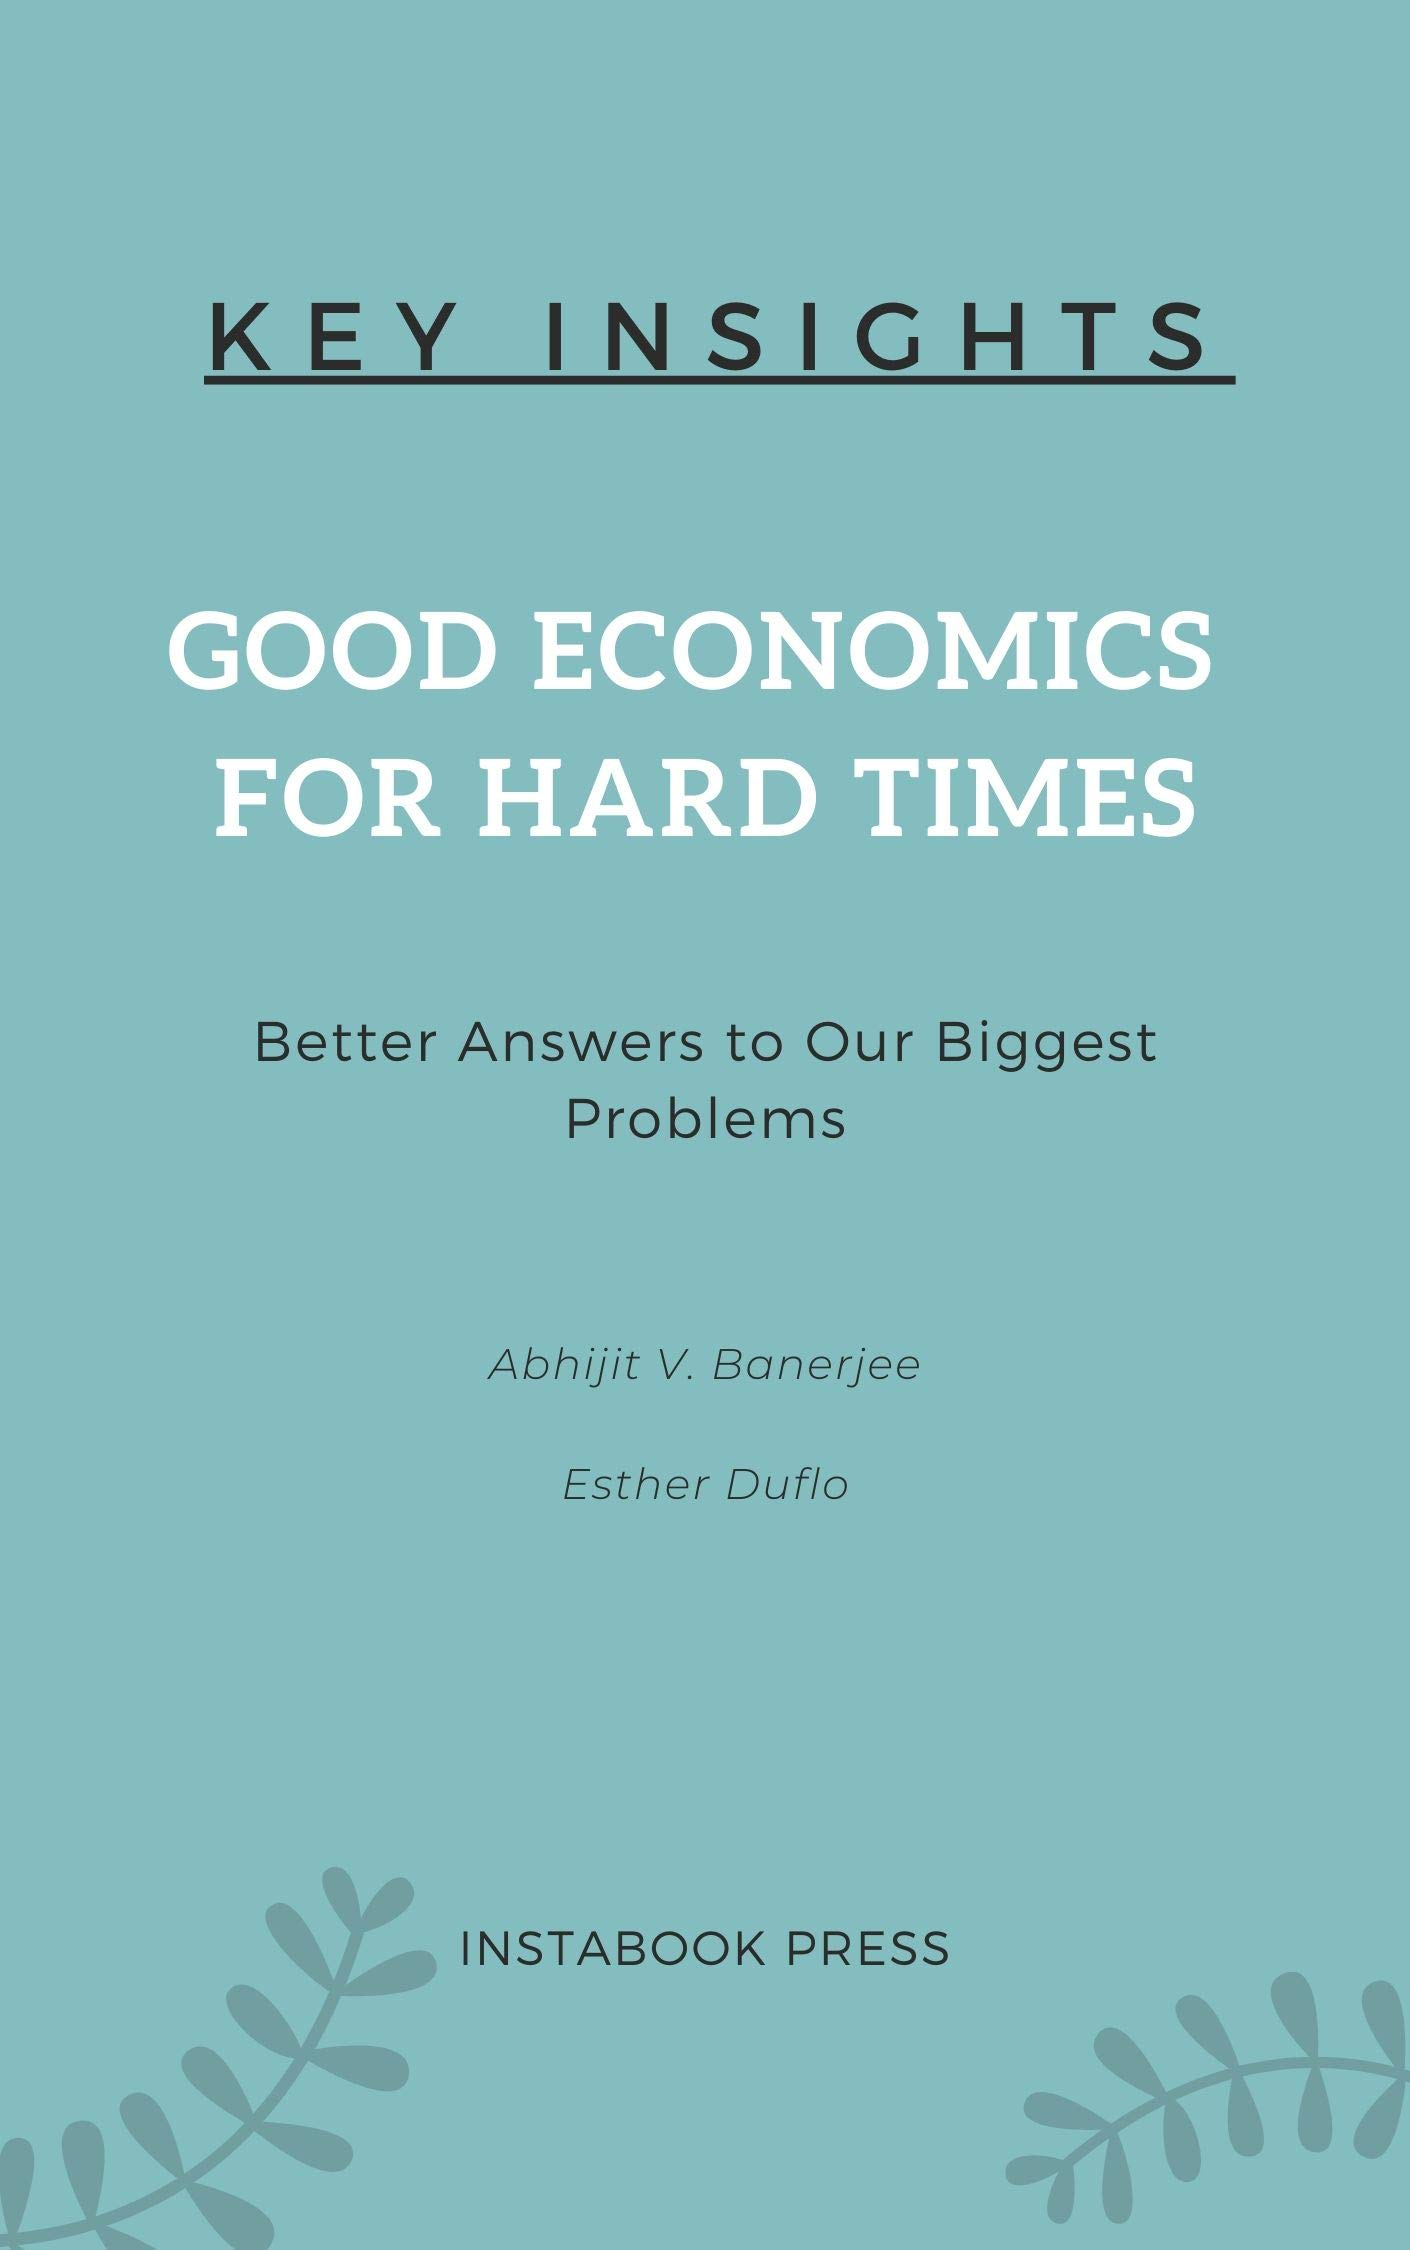 Key Insights: Good Economics for Hard Times: Better Answers to Our Biggest Problems By Abhijit V. Banerjee and Esther Duflo